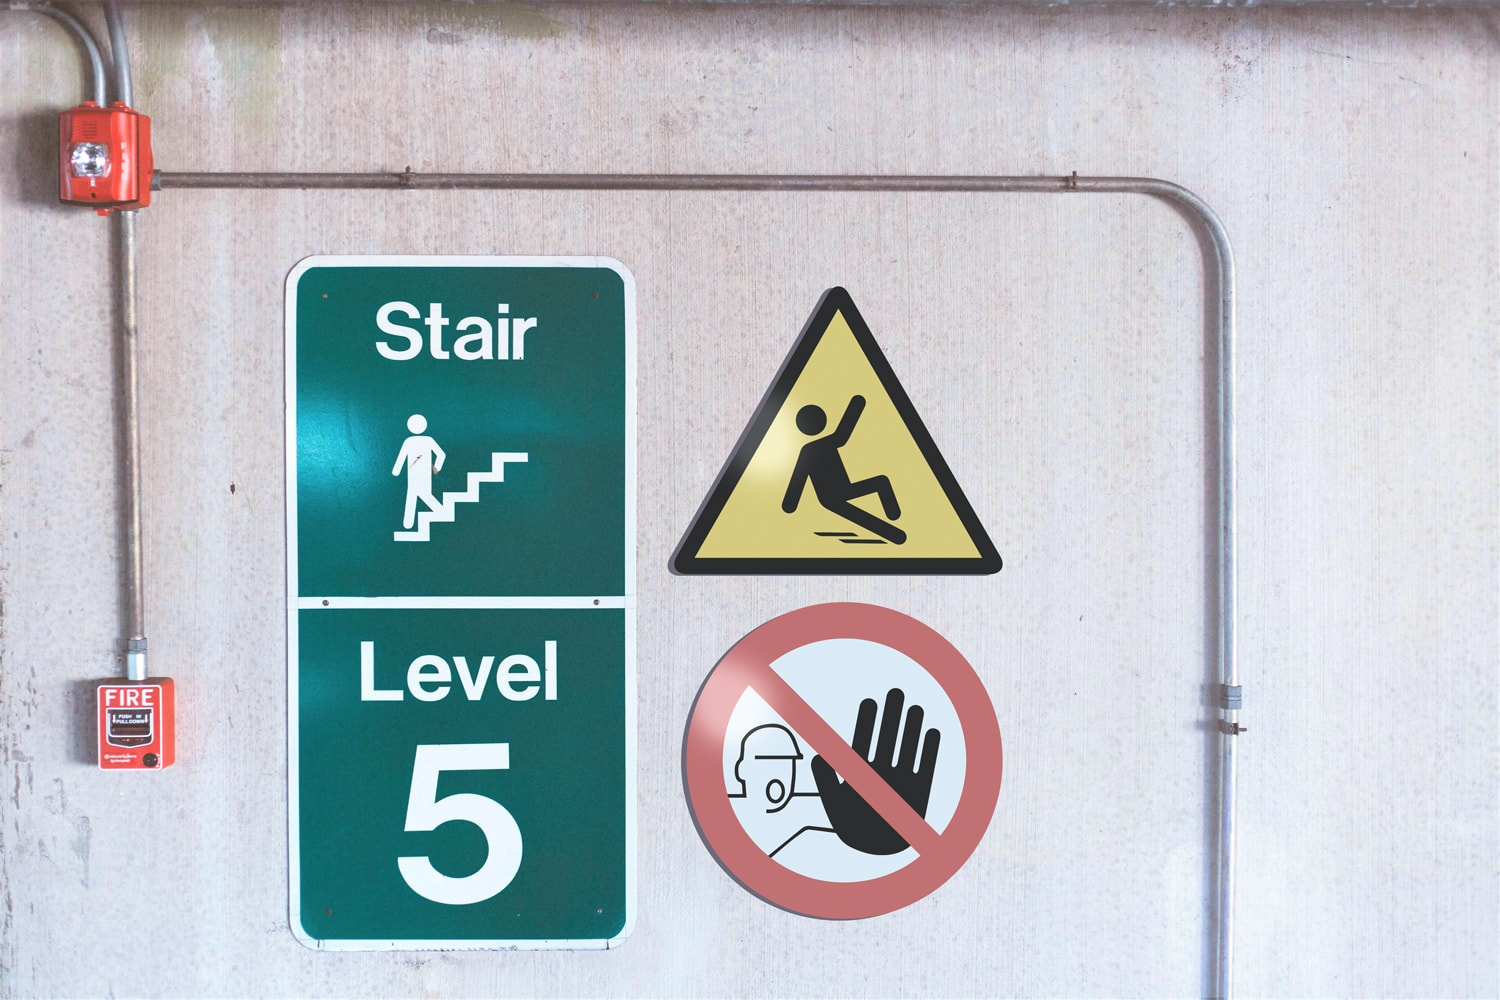 All safety signs